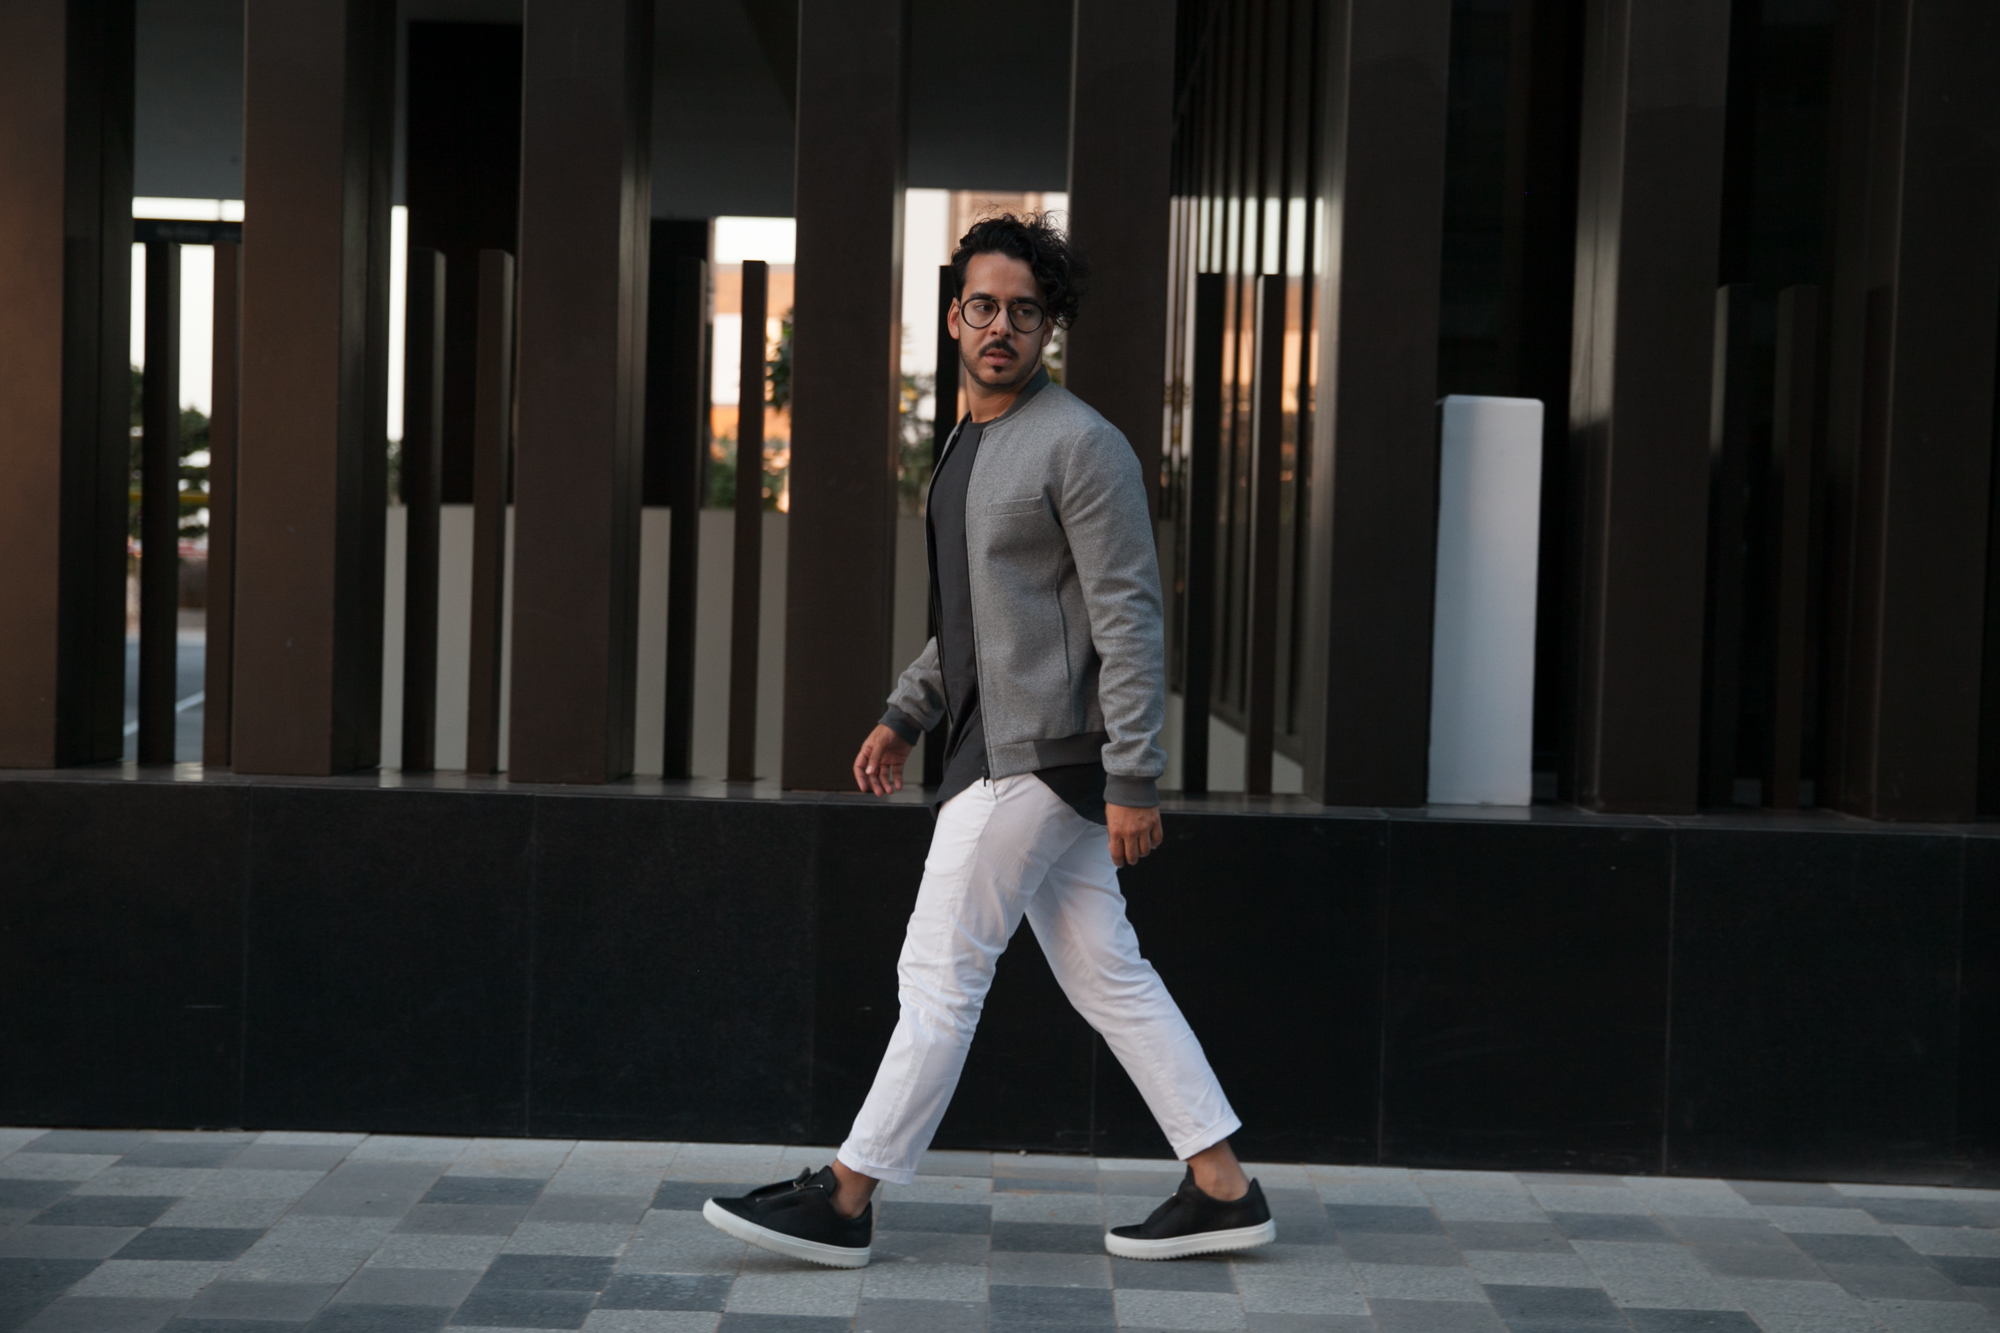 mens style blog in dubai